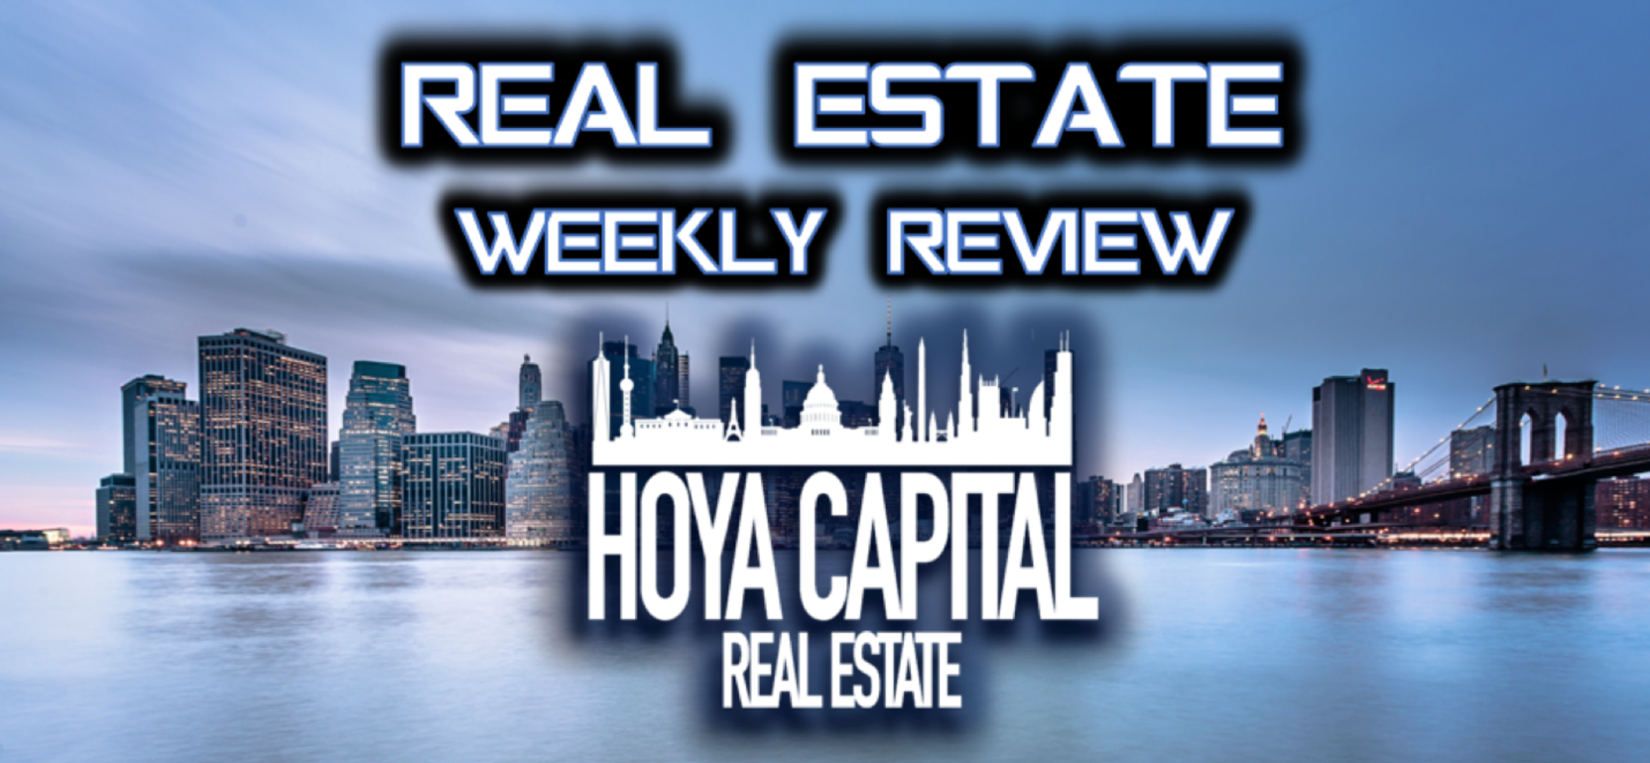 Real Estate Powers Stocks To Near-Record Highs